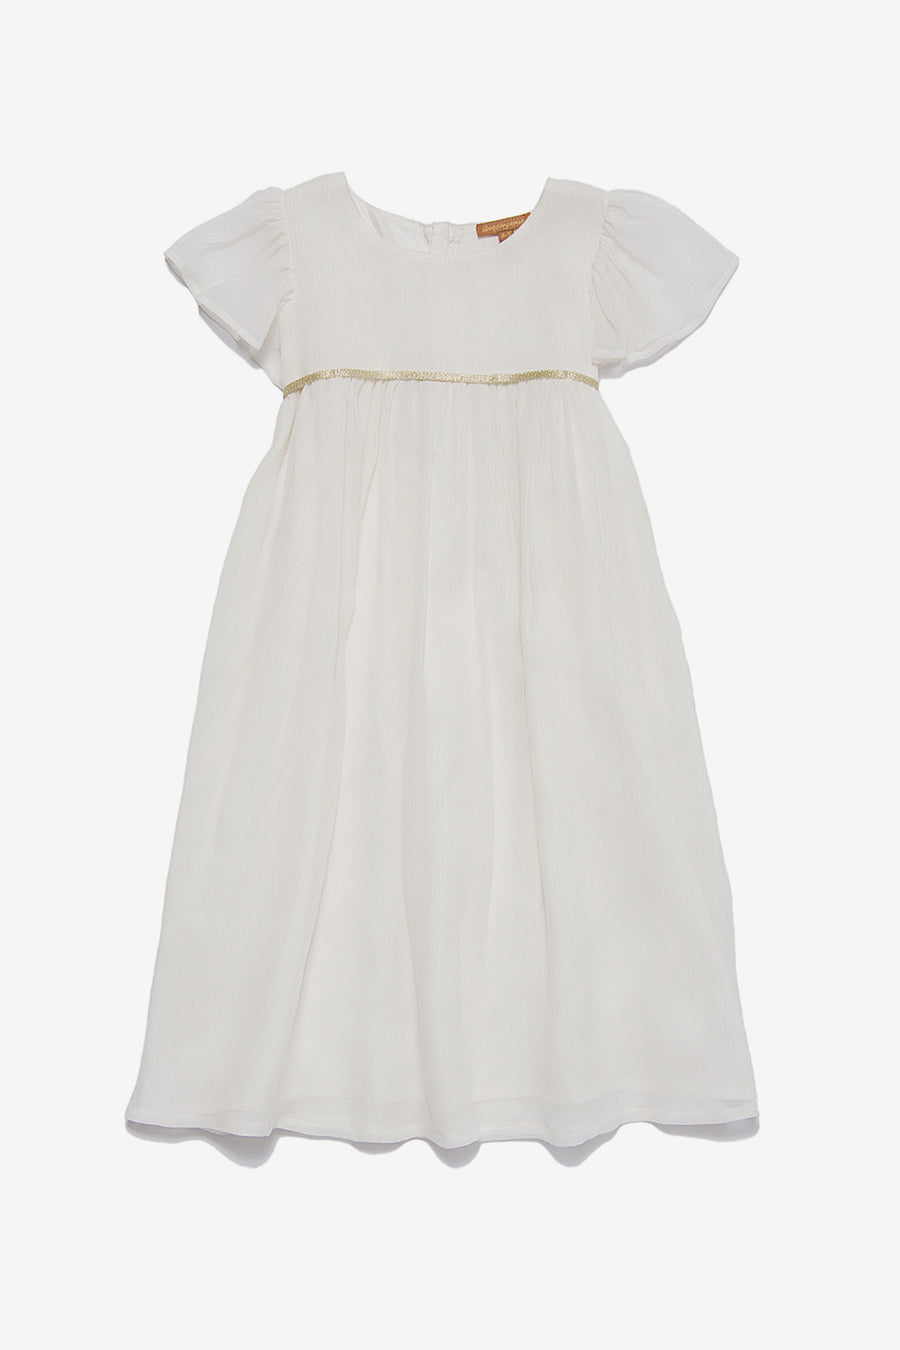 Wild & Gorgeous Emma Dress - Cream